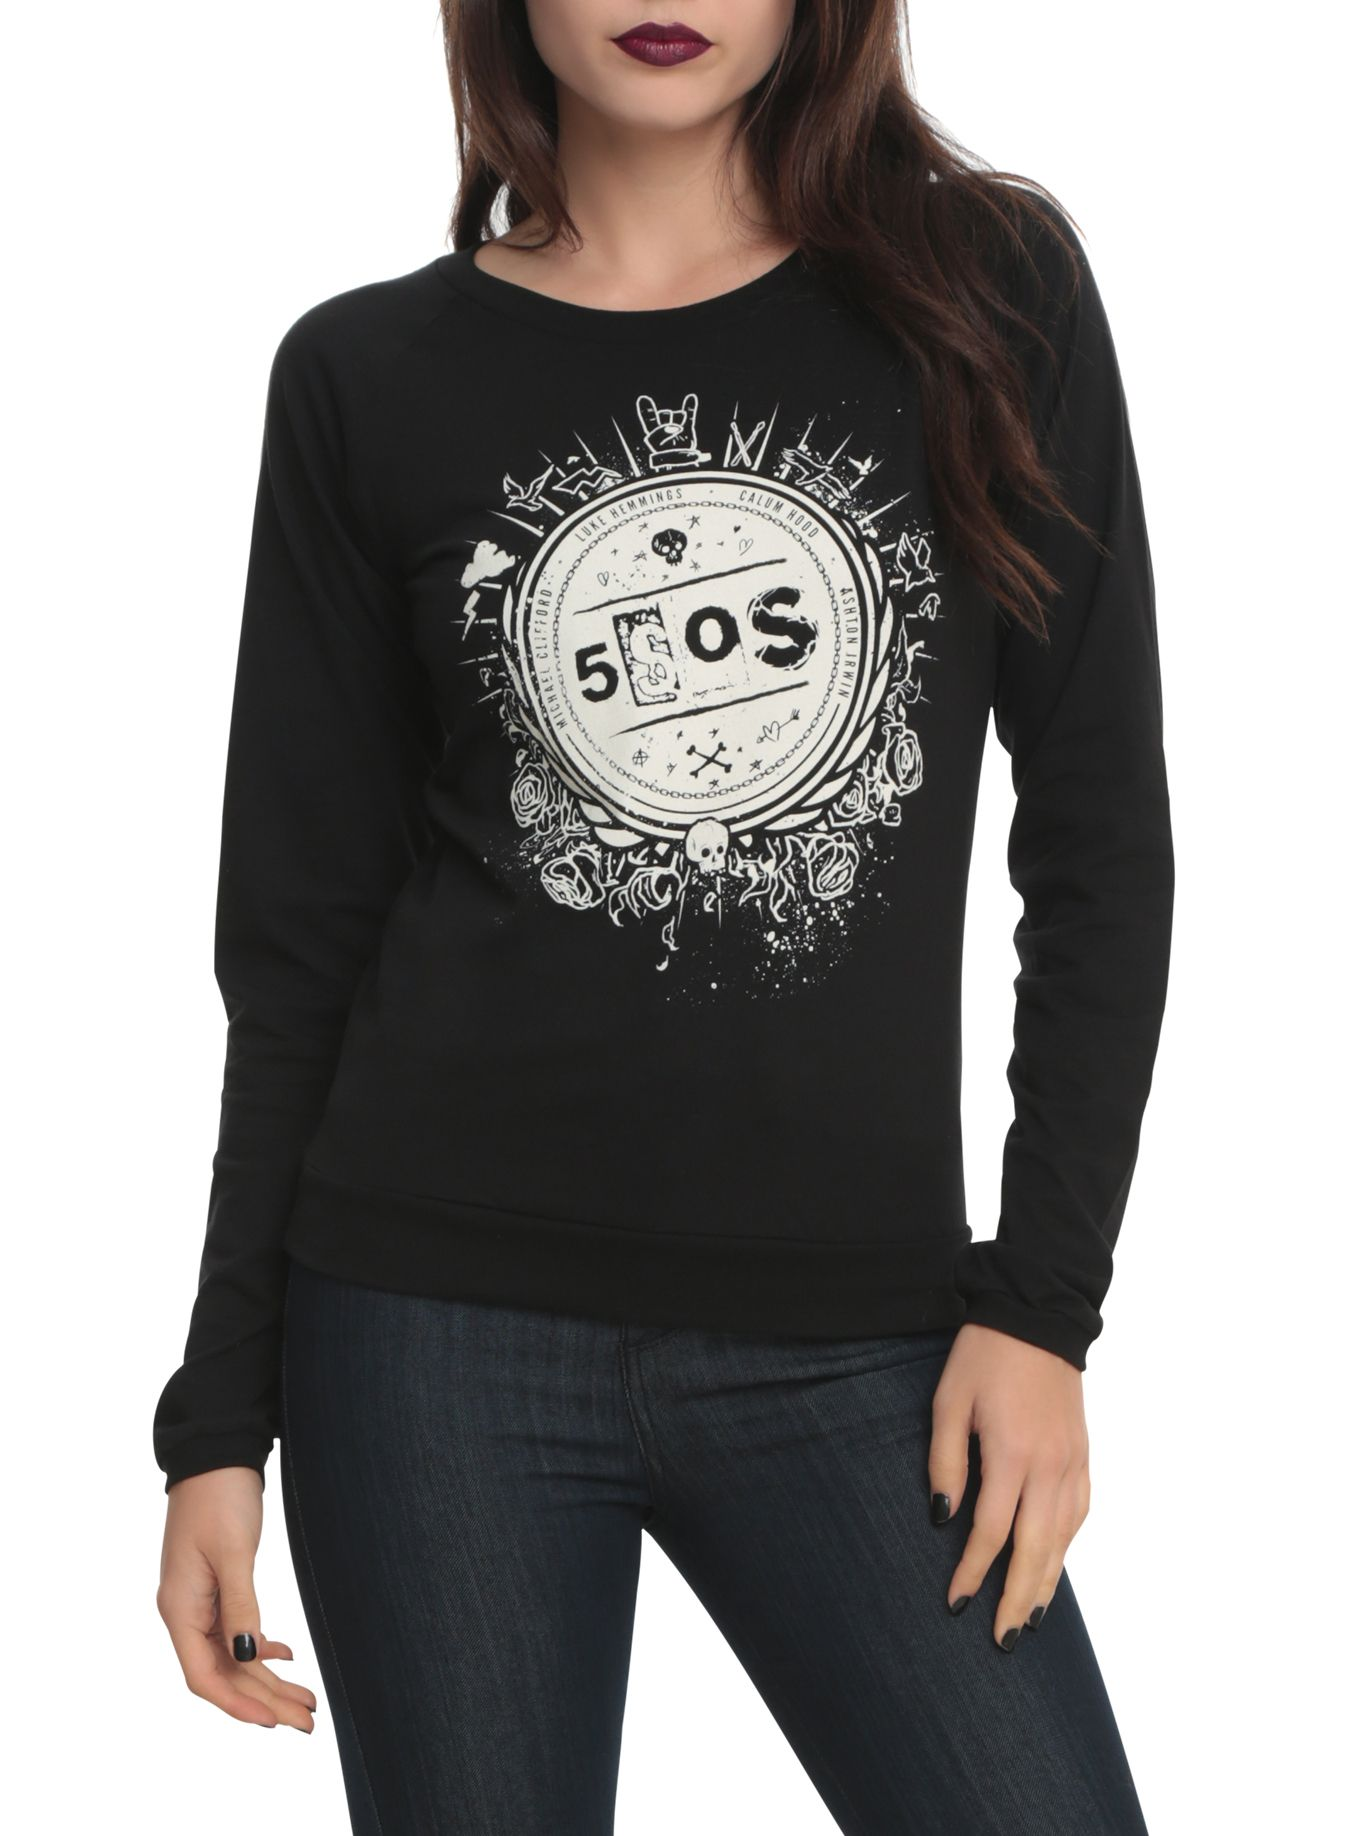 5 Seconds Of Summer Crest Girls Pullover Top Wear Me Out 5